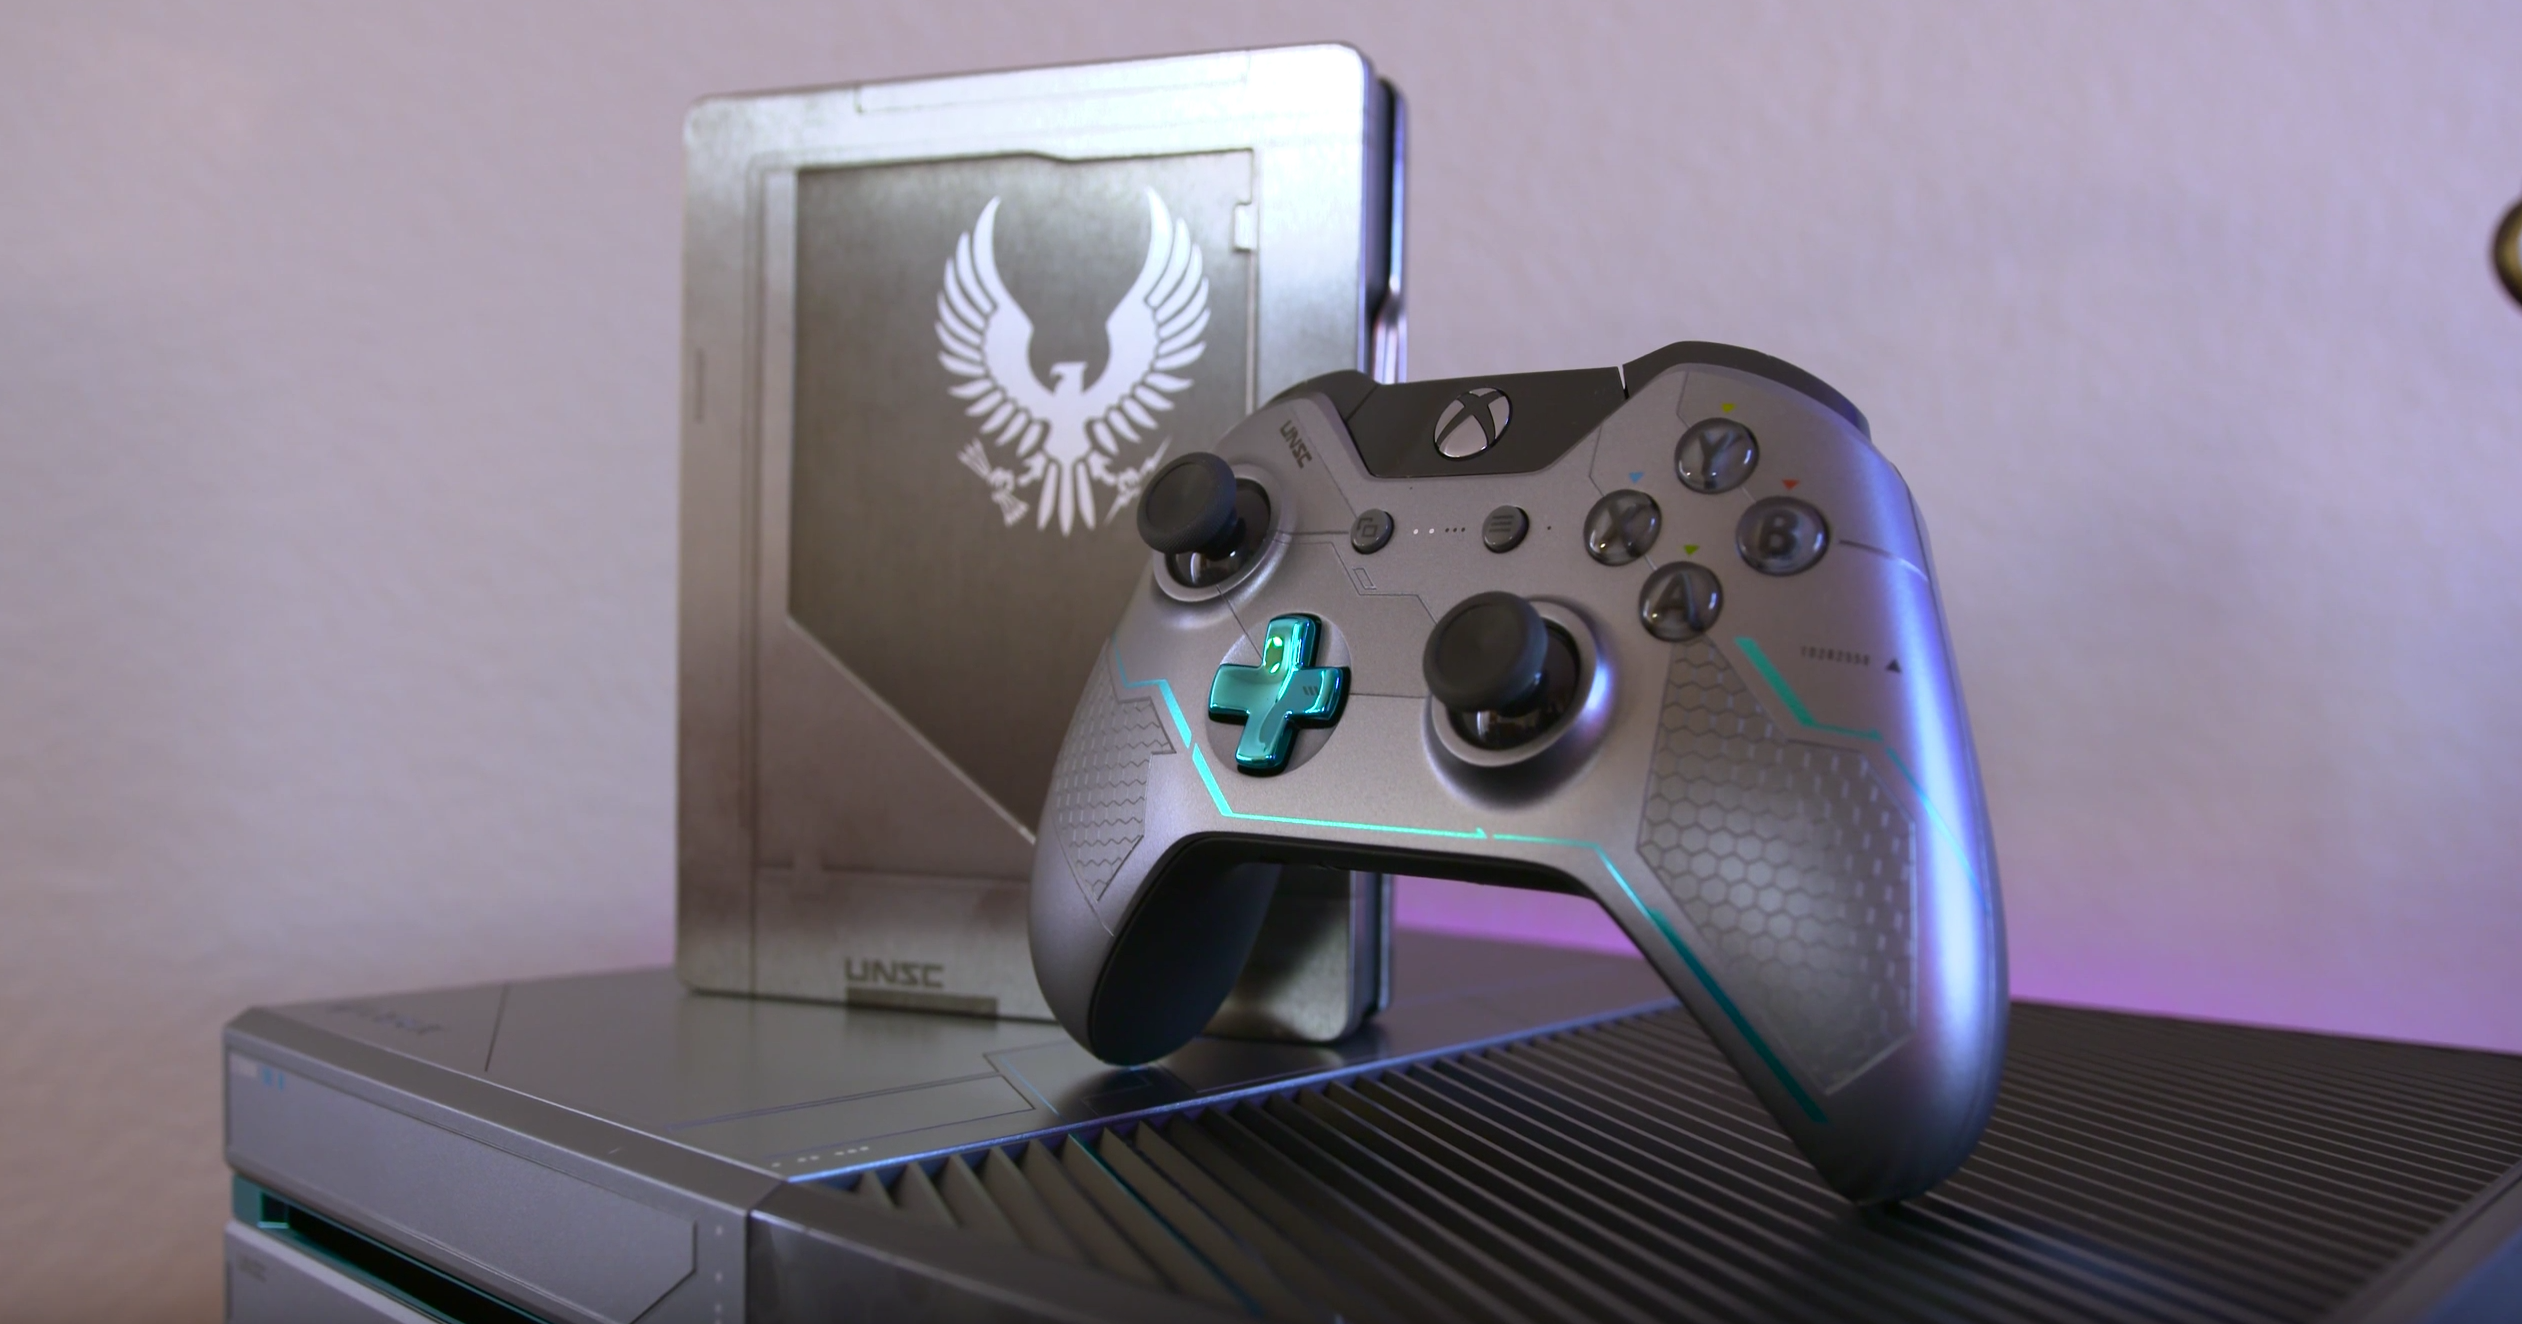 Unboxing and Review: Halo 5 Xbox One Limited Edition Console